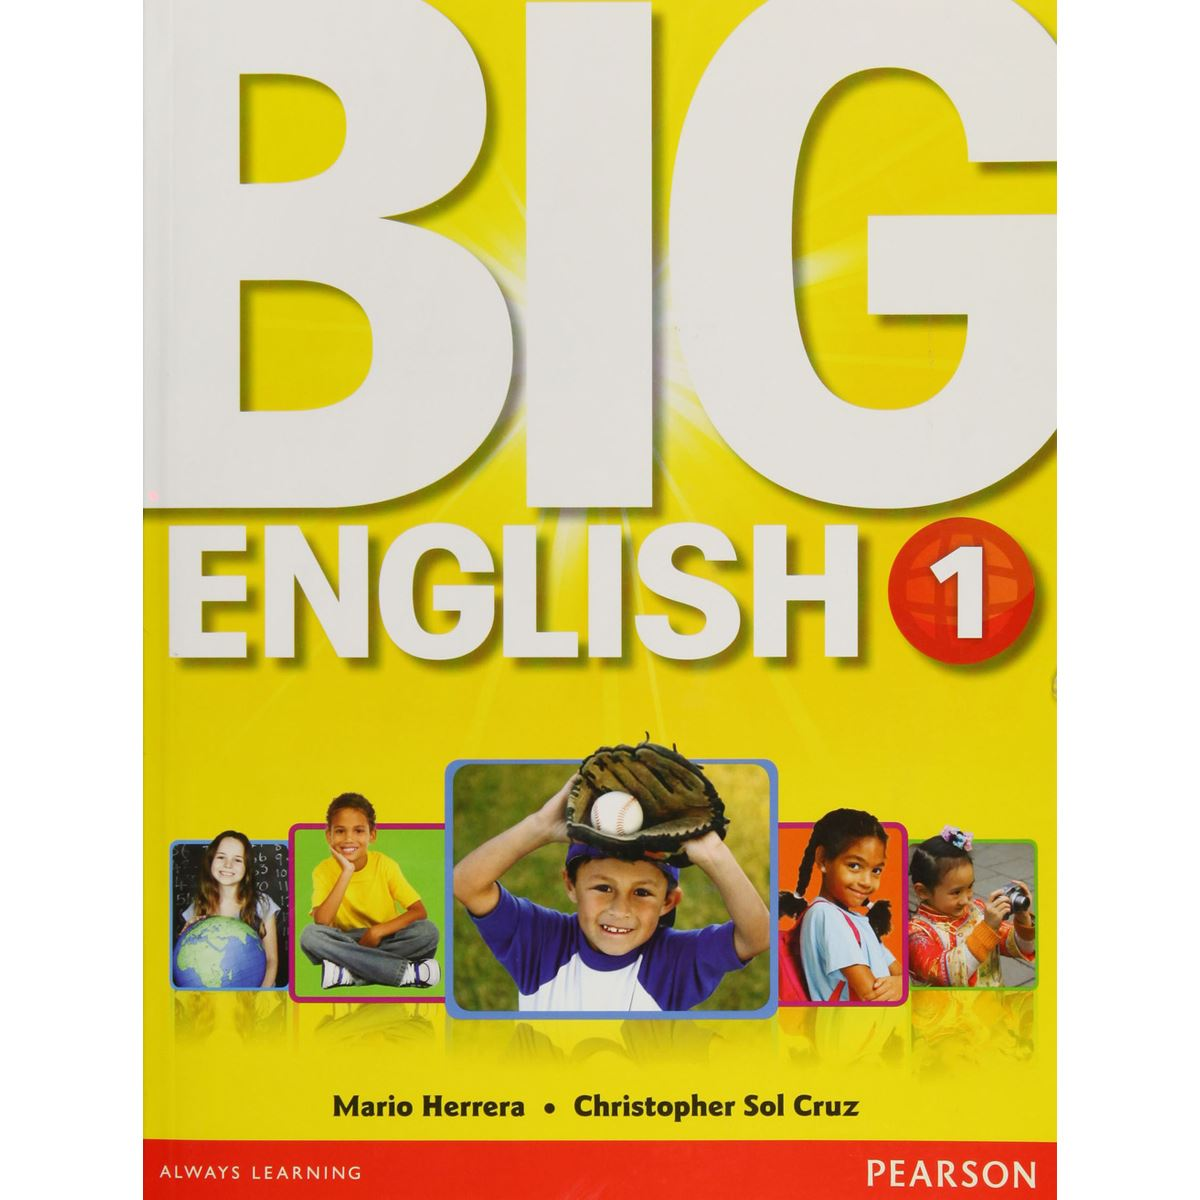 Big English 1 Sb With Cd Rom Pack